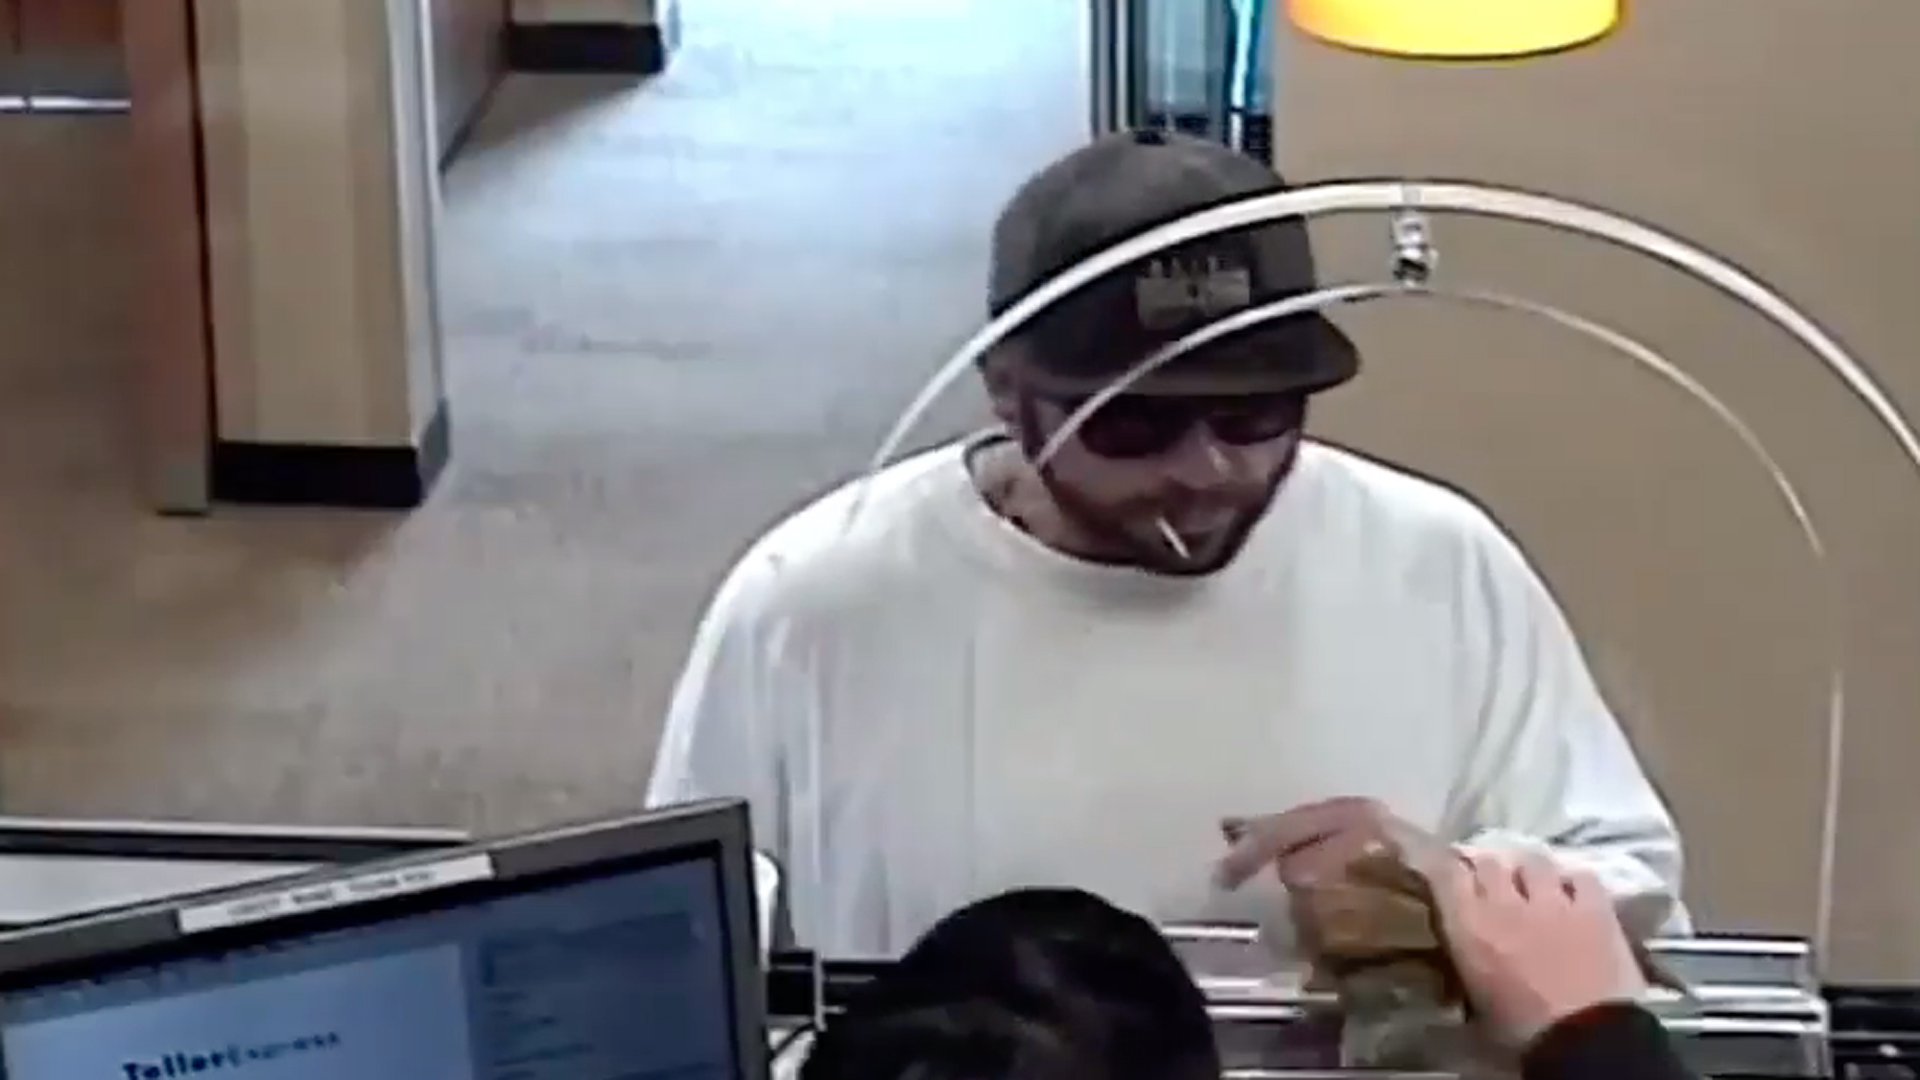 Police are seeking the man pictured in this surveillance video in connection with the robbery of a Chase bank in Rancho Cucamonga on Nov. 1, 2019. (Credit: San Bernardino County Sheriff's Department)